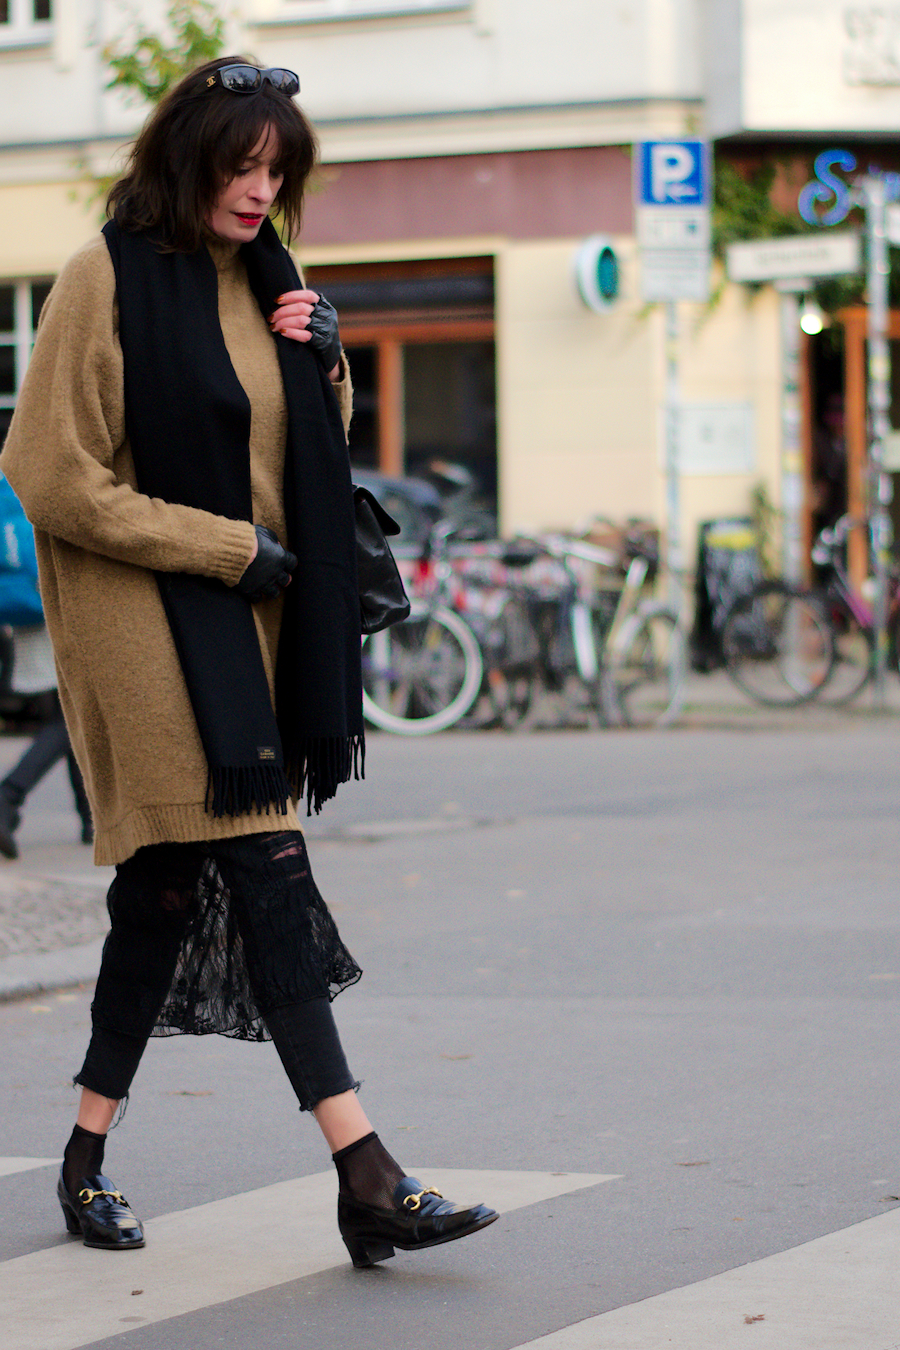 just-take-a-look-berlin-daily-look-for-fall